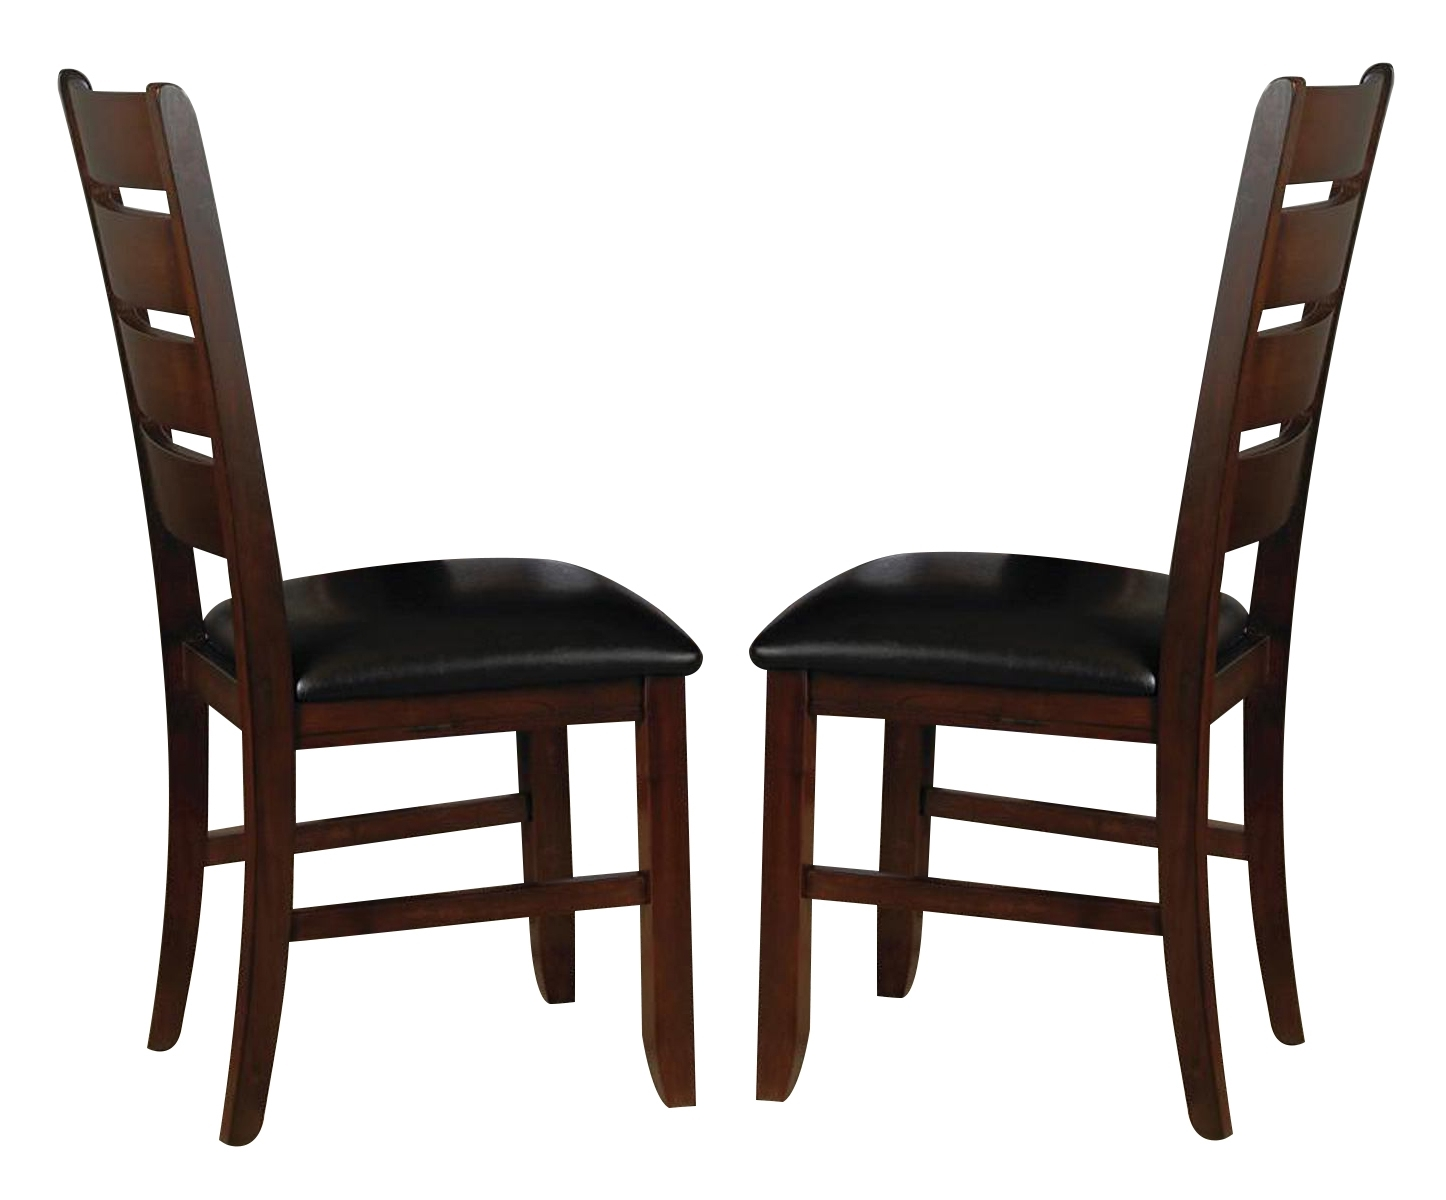 Bardstown Side Chairs For Preferred Crown Mark Bardstown Side Chair In Espresso (set Of 2) 2152s (View 7 of 20)